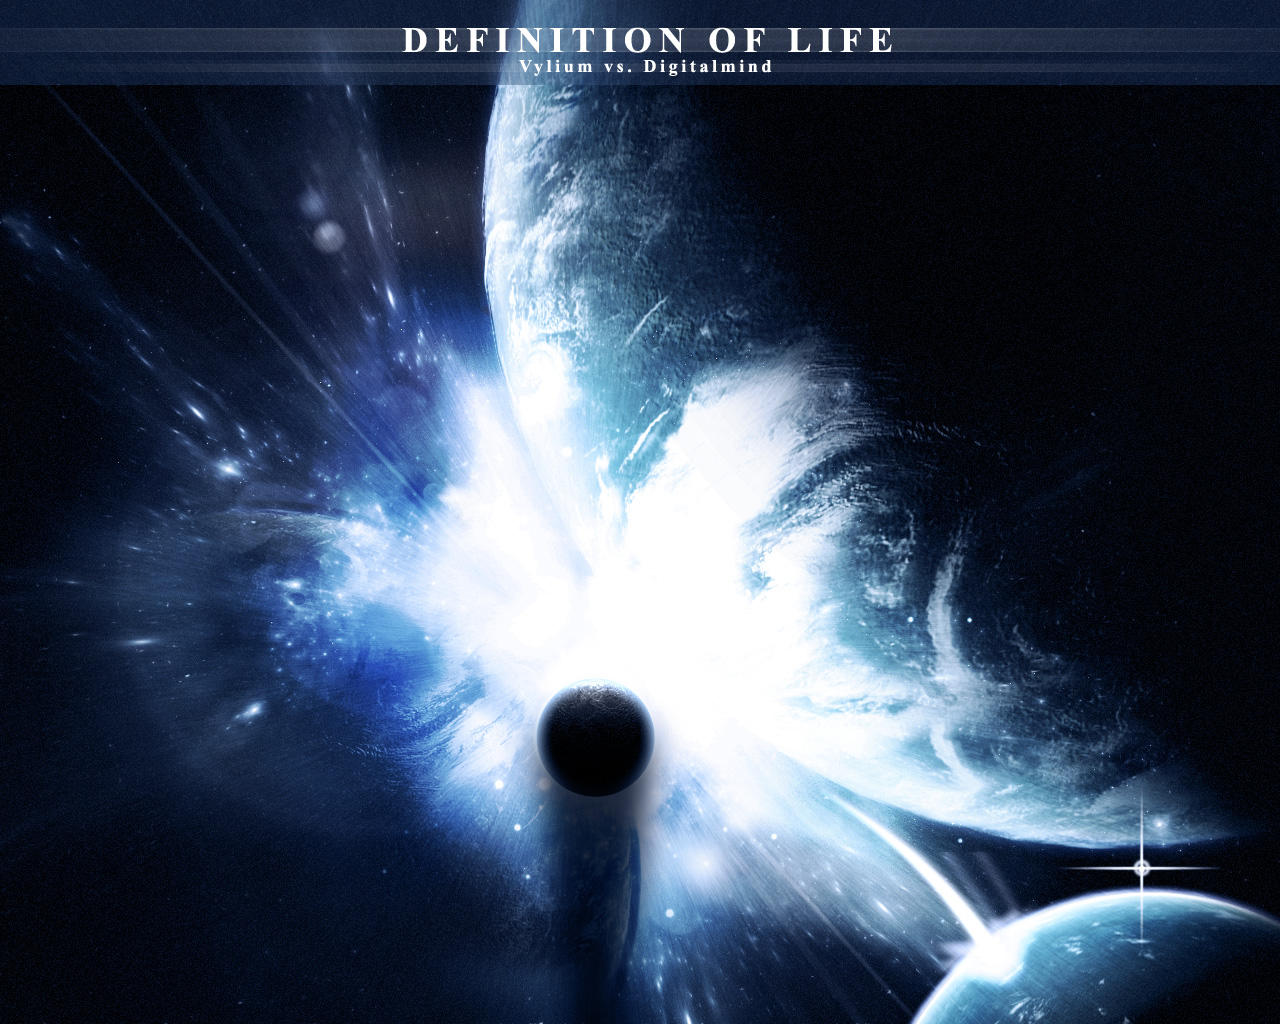 Definition of life - Collab by vylium